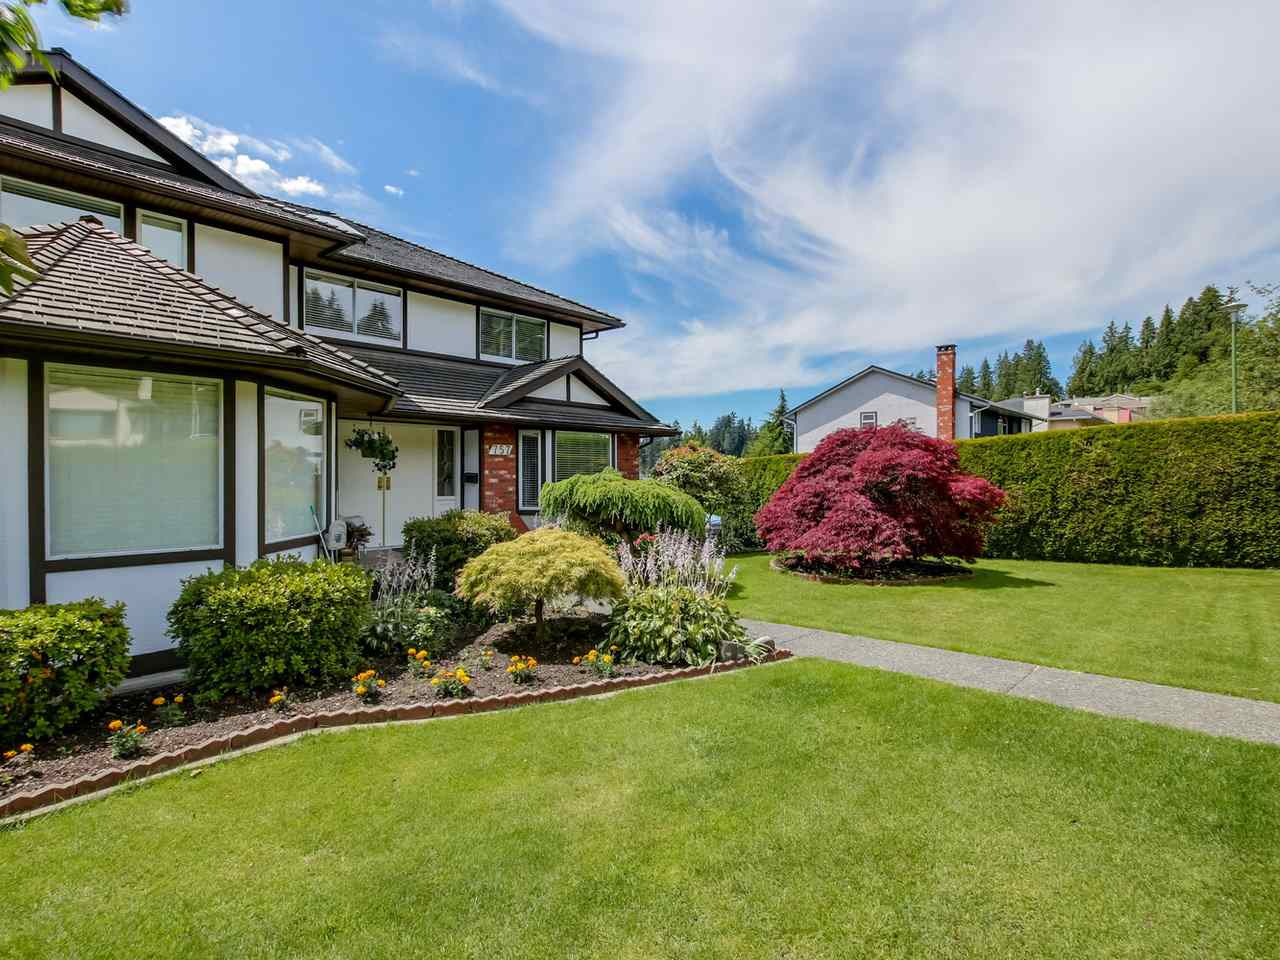 Photo 2: Photos: 757 E 29TH Street in North Vancouver: Tempe House for sale : MLS®# R2083444